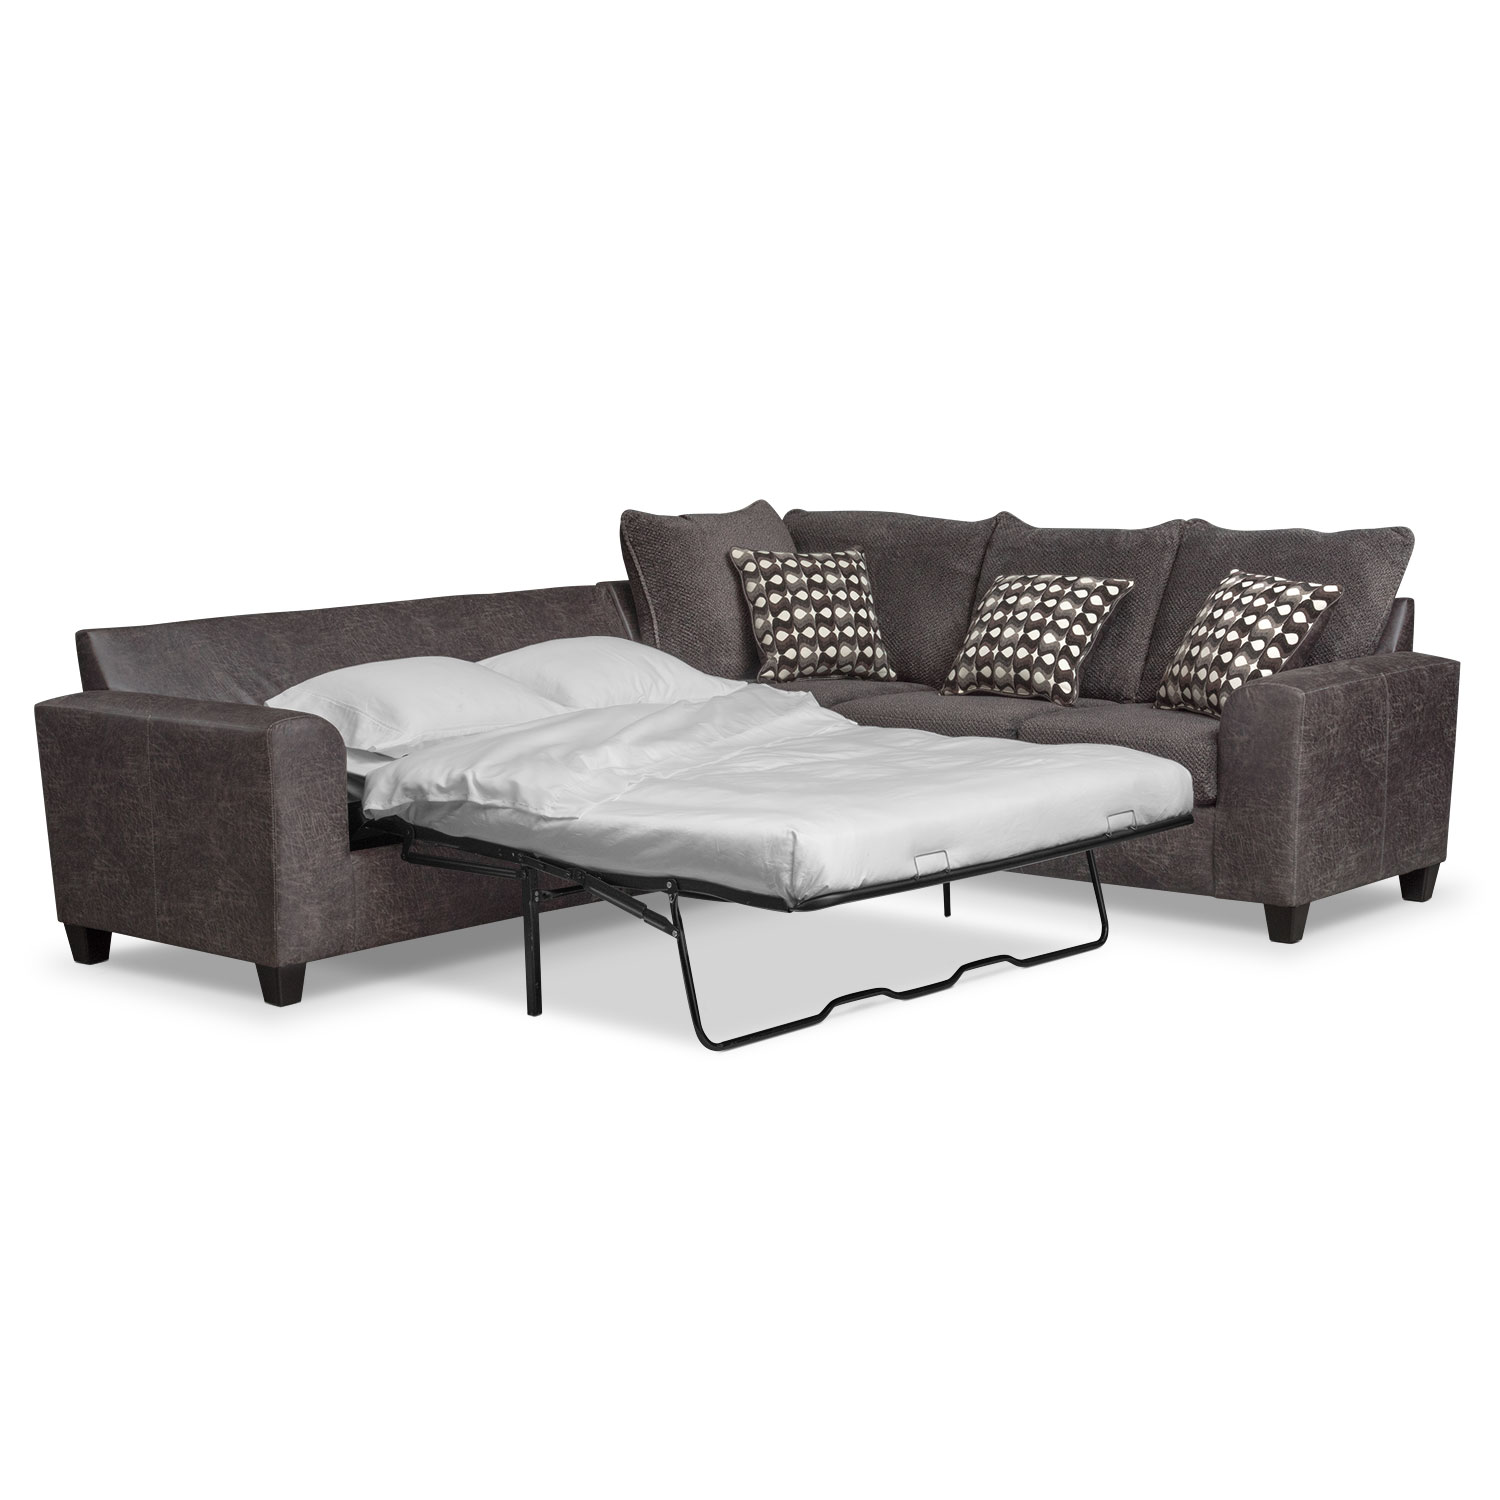 Brando 3-Piece Memory Foam Sleeper Sectional - Smoke